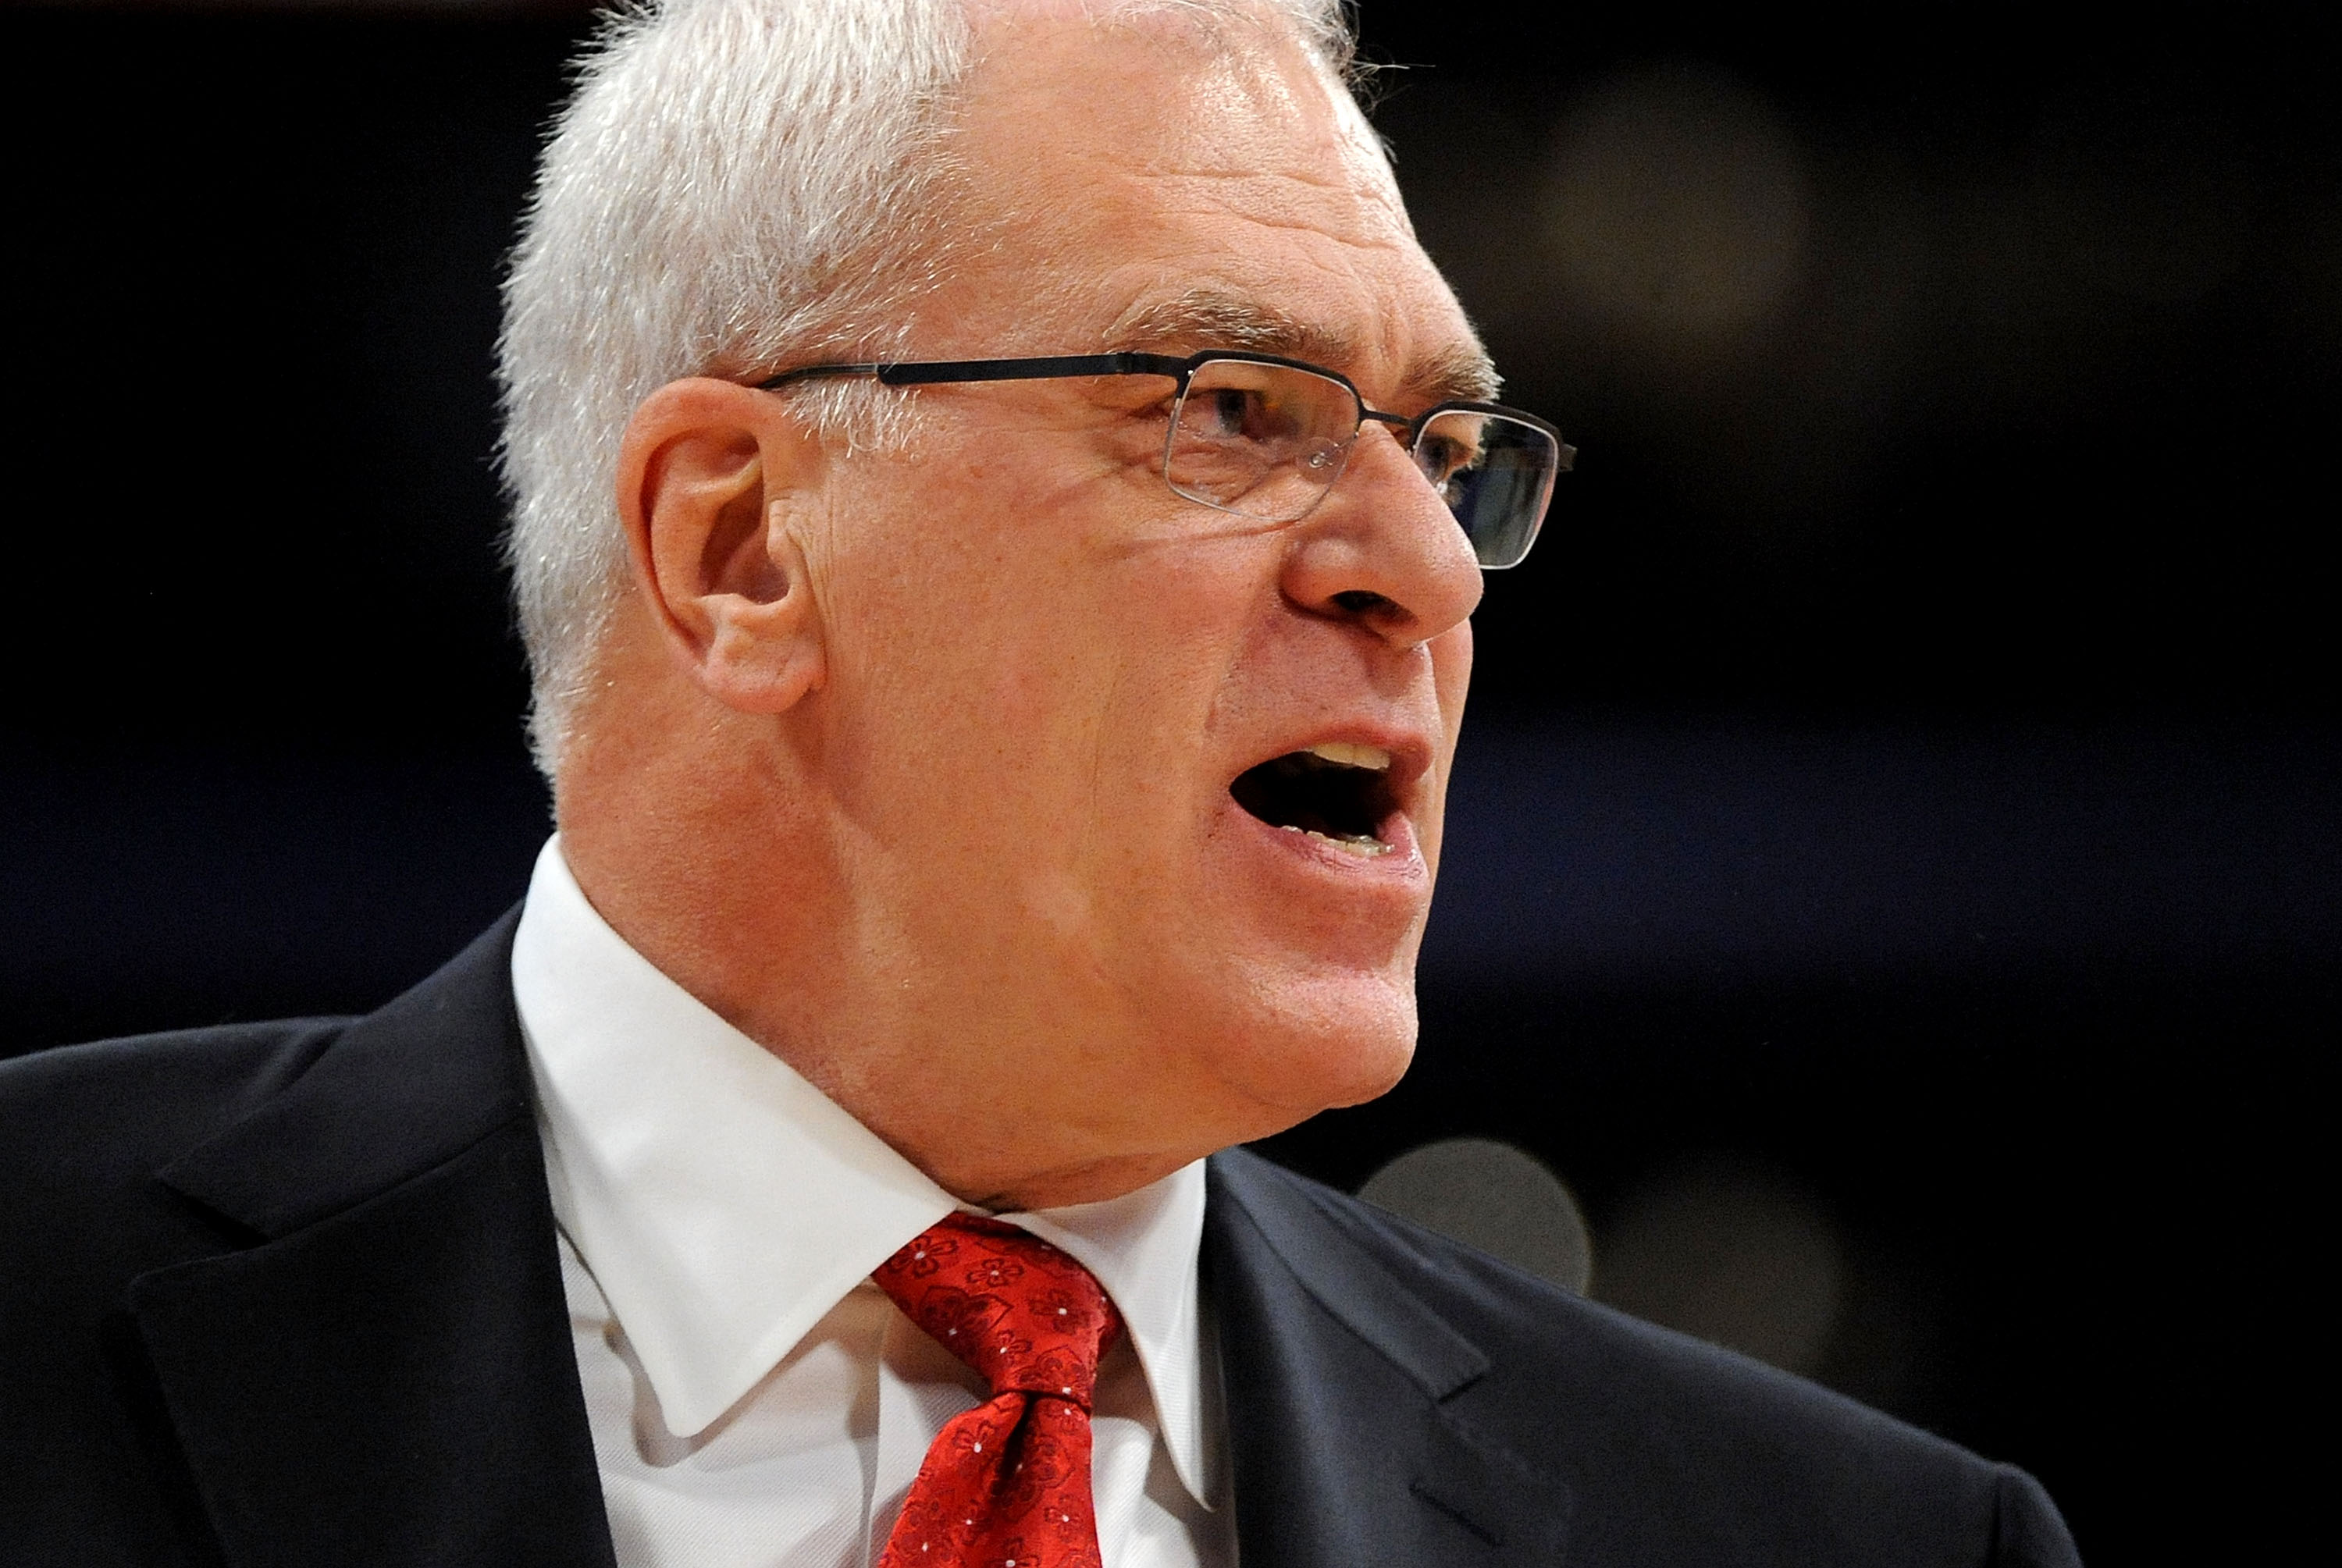 LOS ANGELES, CA - DECEMBER 25:  Head coach Phil Jackson of the Los Angeles Lakers reacts during the game against the Miami Heat at Staples Center on December 25, 2010 in Los Angeles, California. NOTE TO USER: User expressly acknowledges and agrees that, b